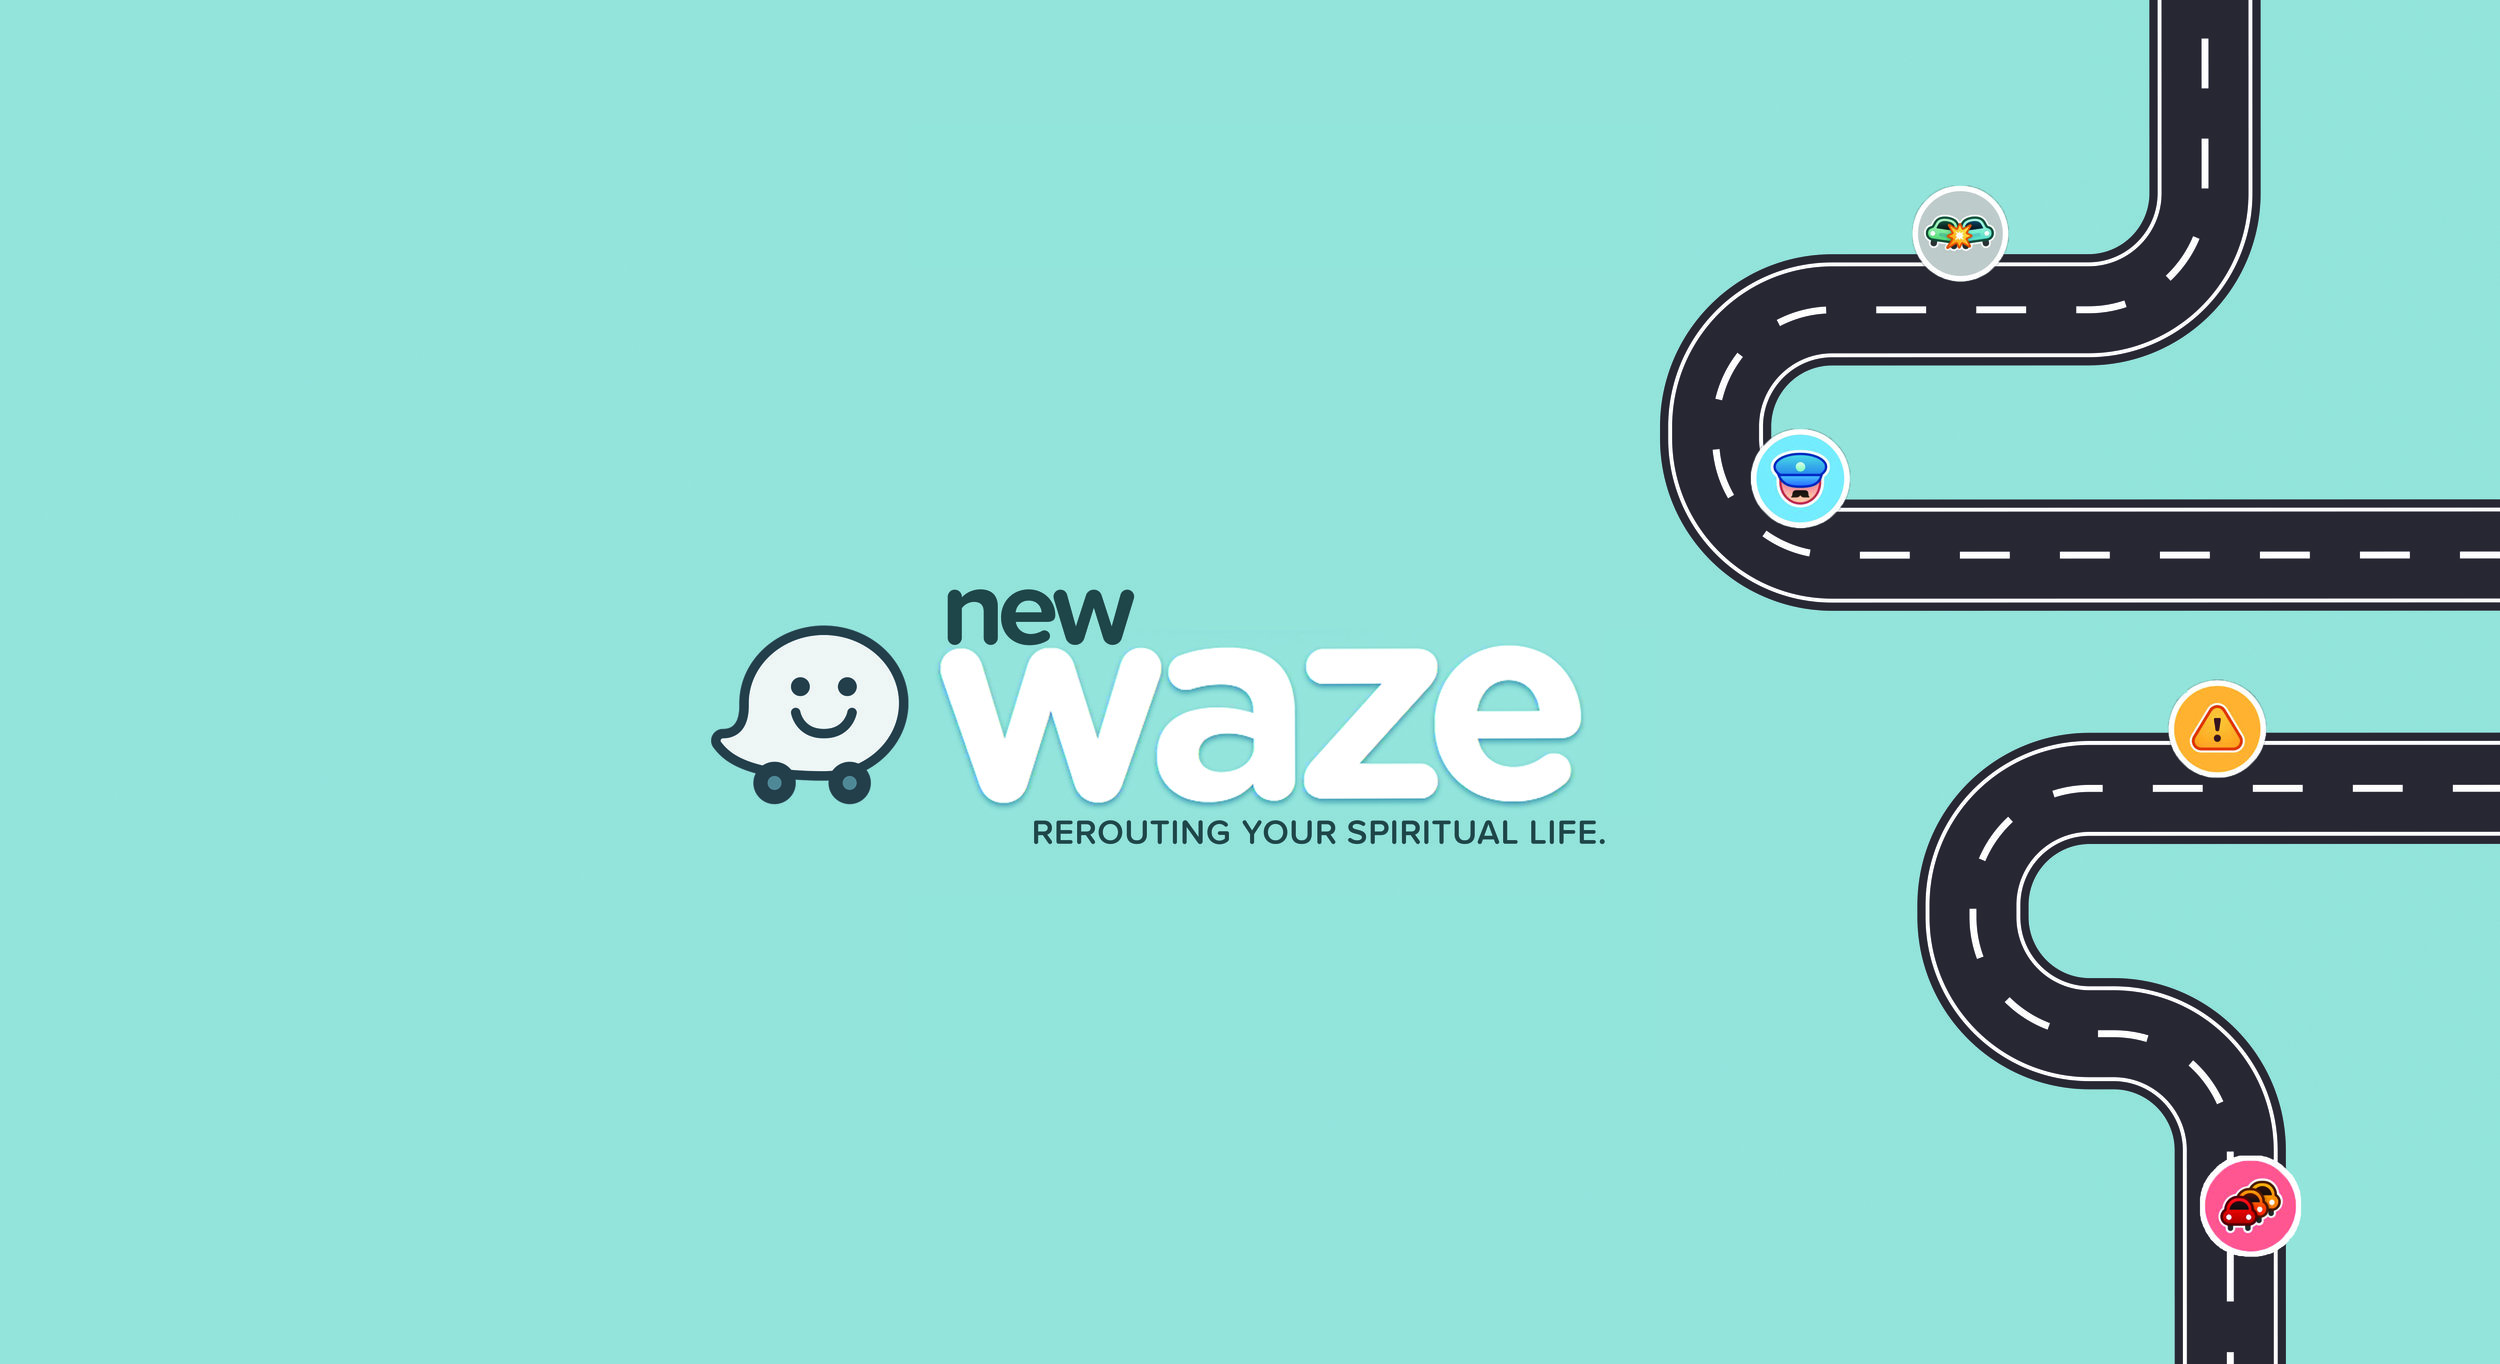 new waze updated tag final graphic.jpg